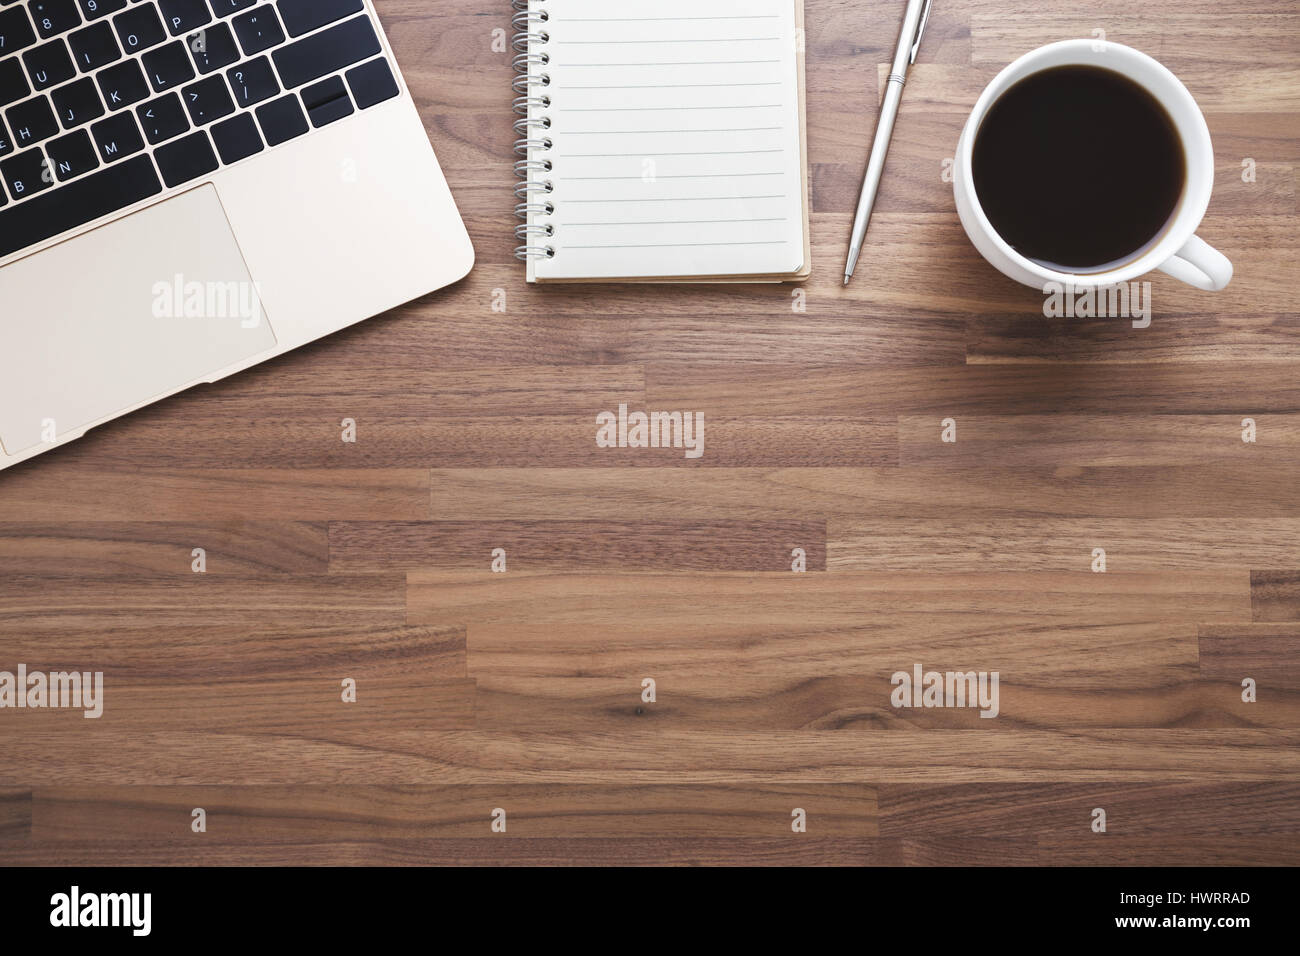 Wooden Desk Background ~ Office wood desk background with laptop and coffee cup